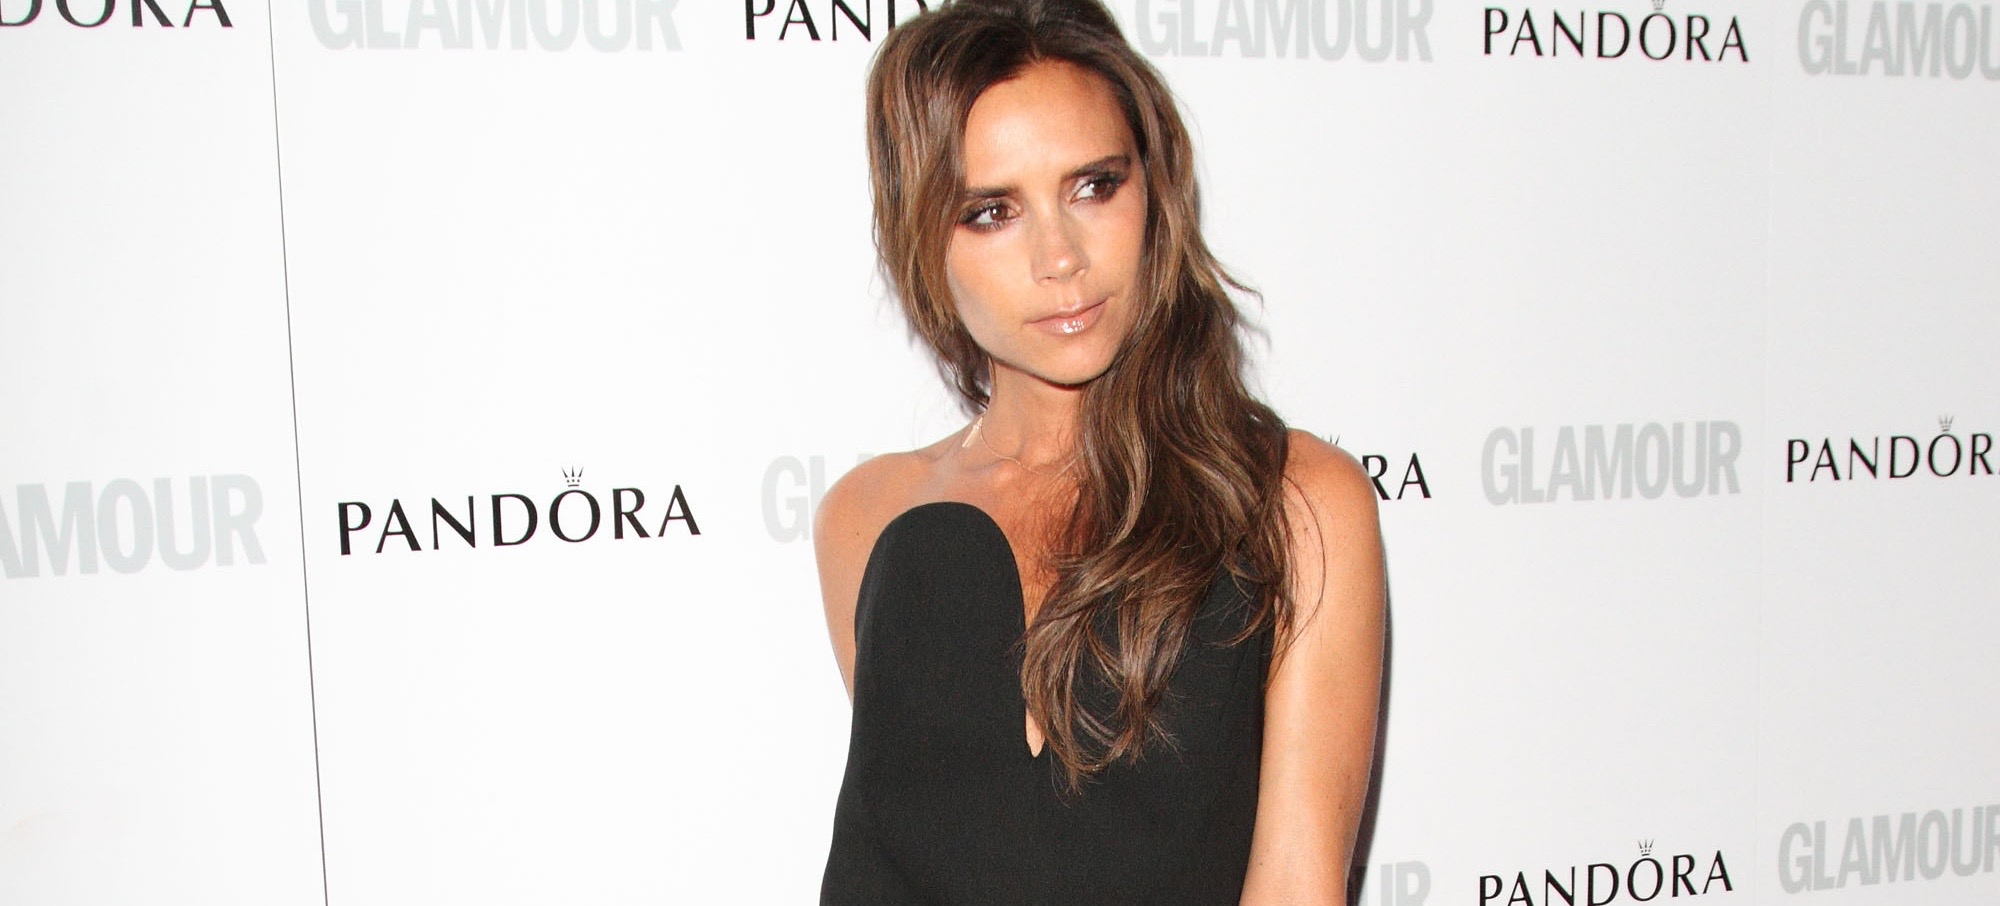 21 Victoria Beckham Fun Facts That'll Make You Love Her Even More